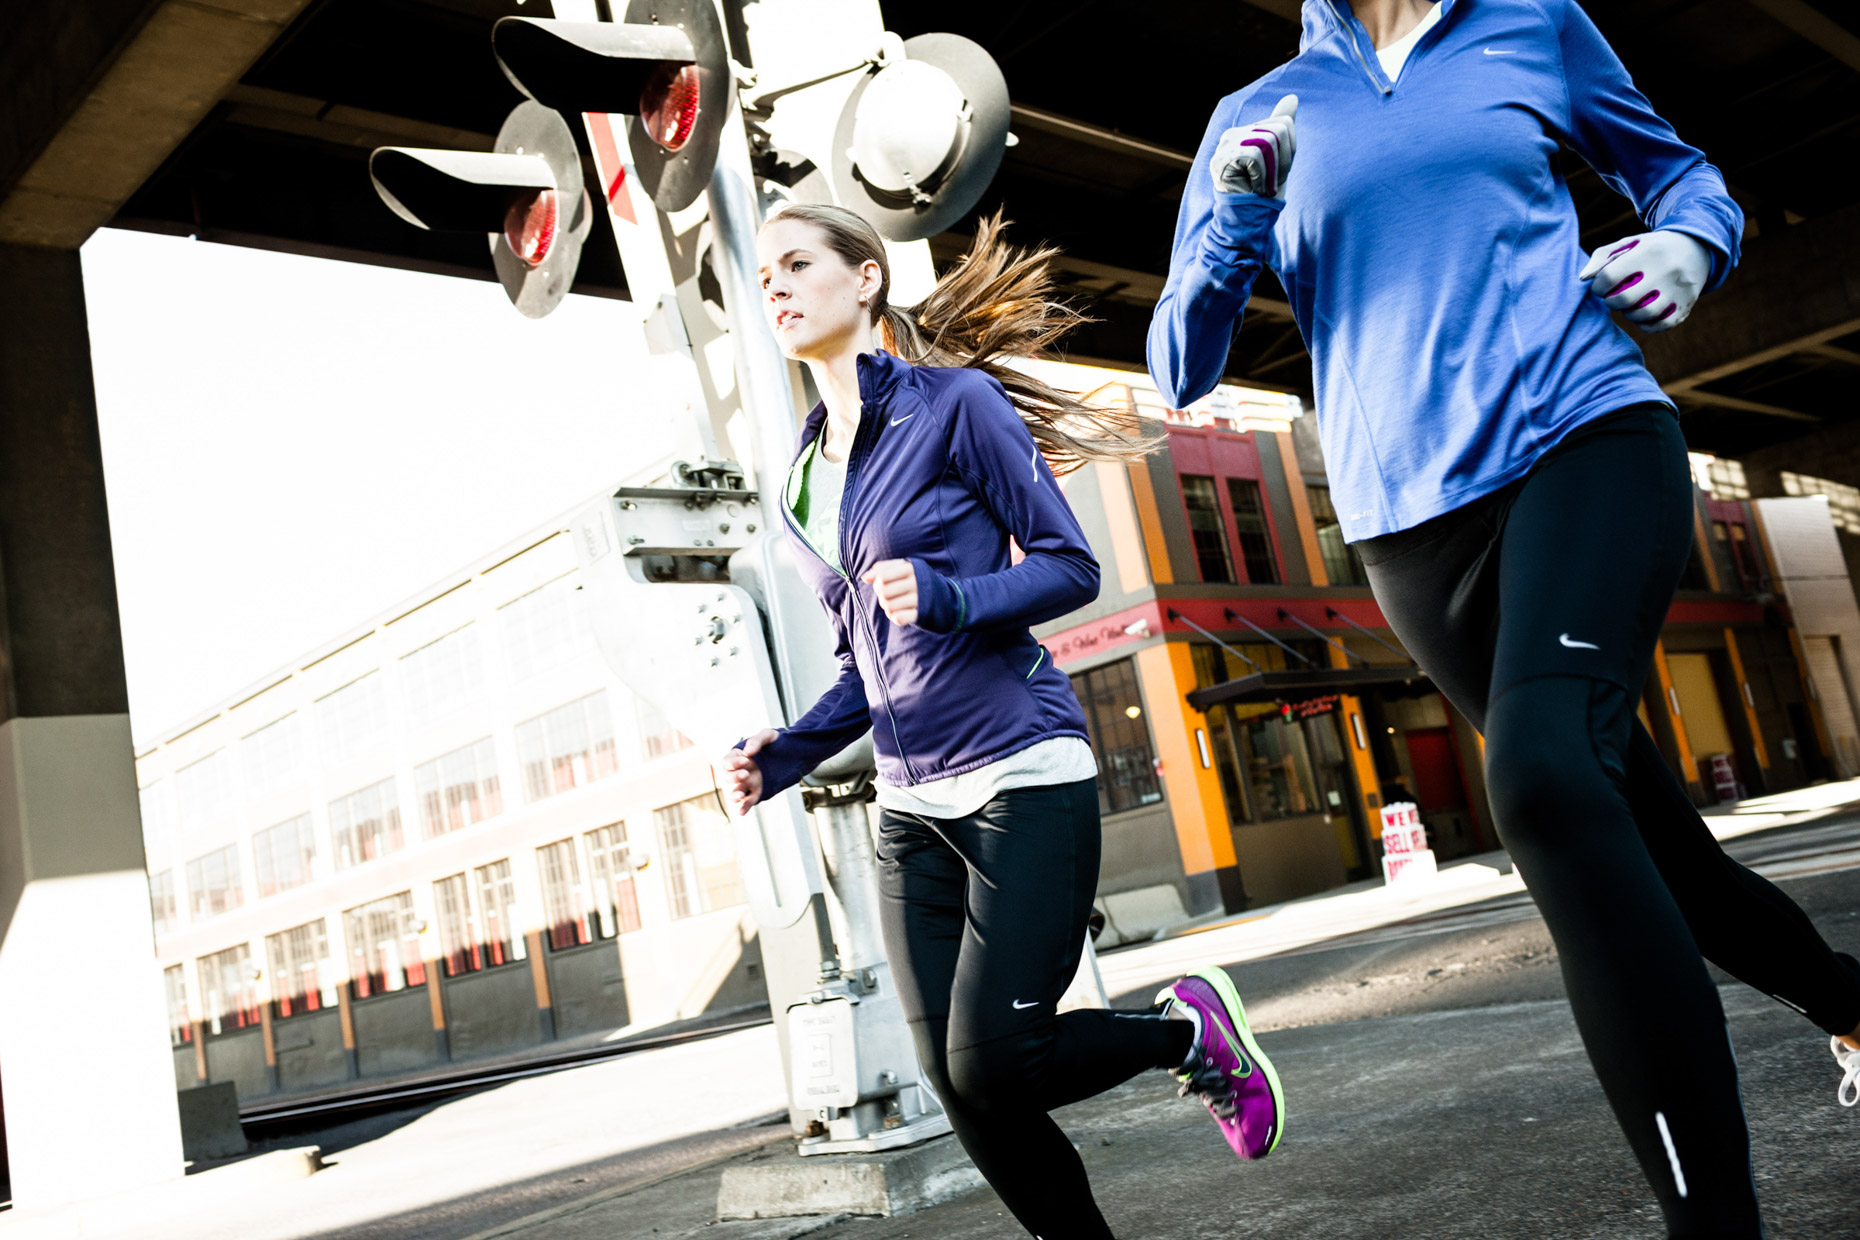 Nike running campaign in SE Industrial area of Portland Oregon by fitness photographer Andy Batt